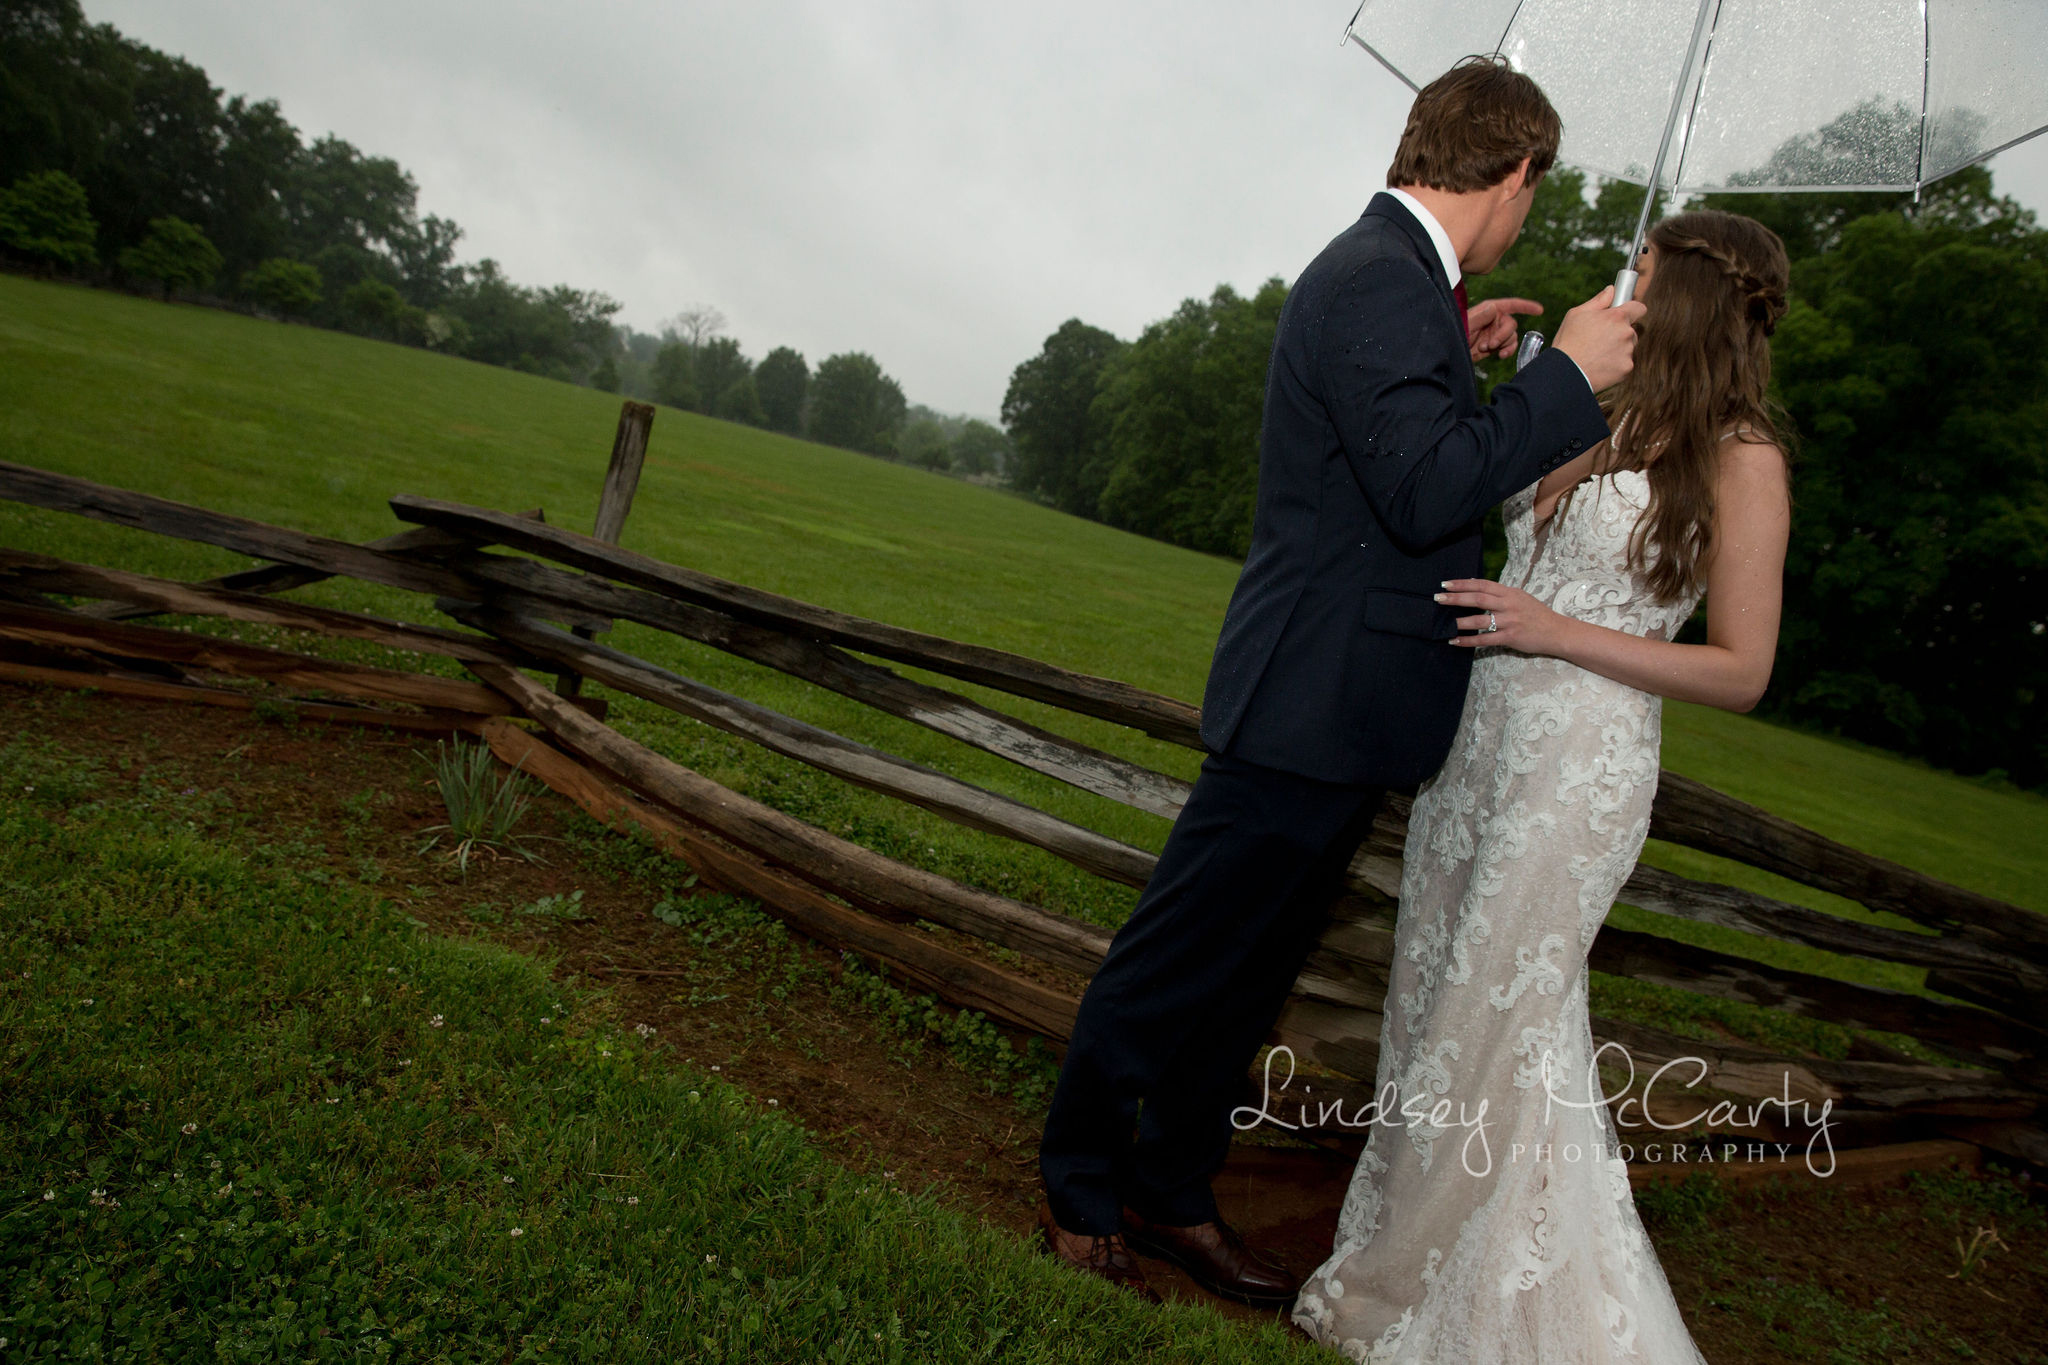 Lindsey McCarty Photography | Roanoke Wedding Photographer | Rainy Wedding Day | Barboursville Ruins & Winery Wedding | Wedding Photographer Tips | Wedding Photographer Blog